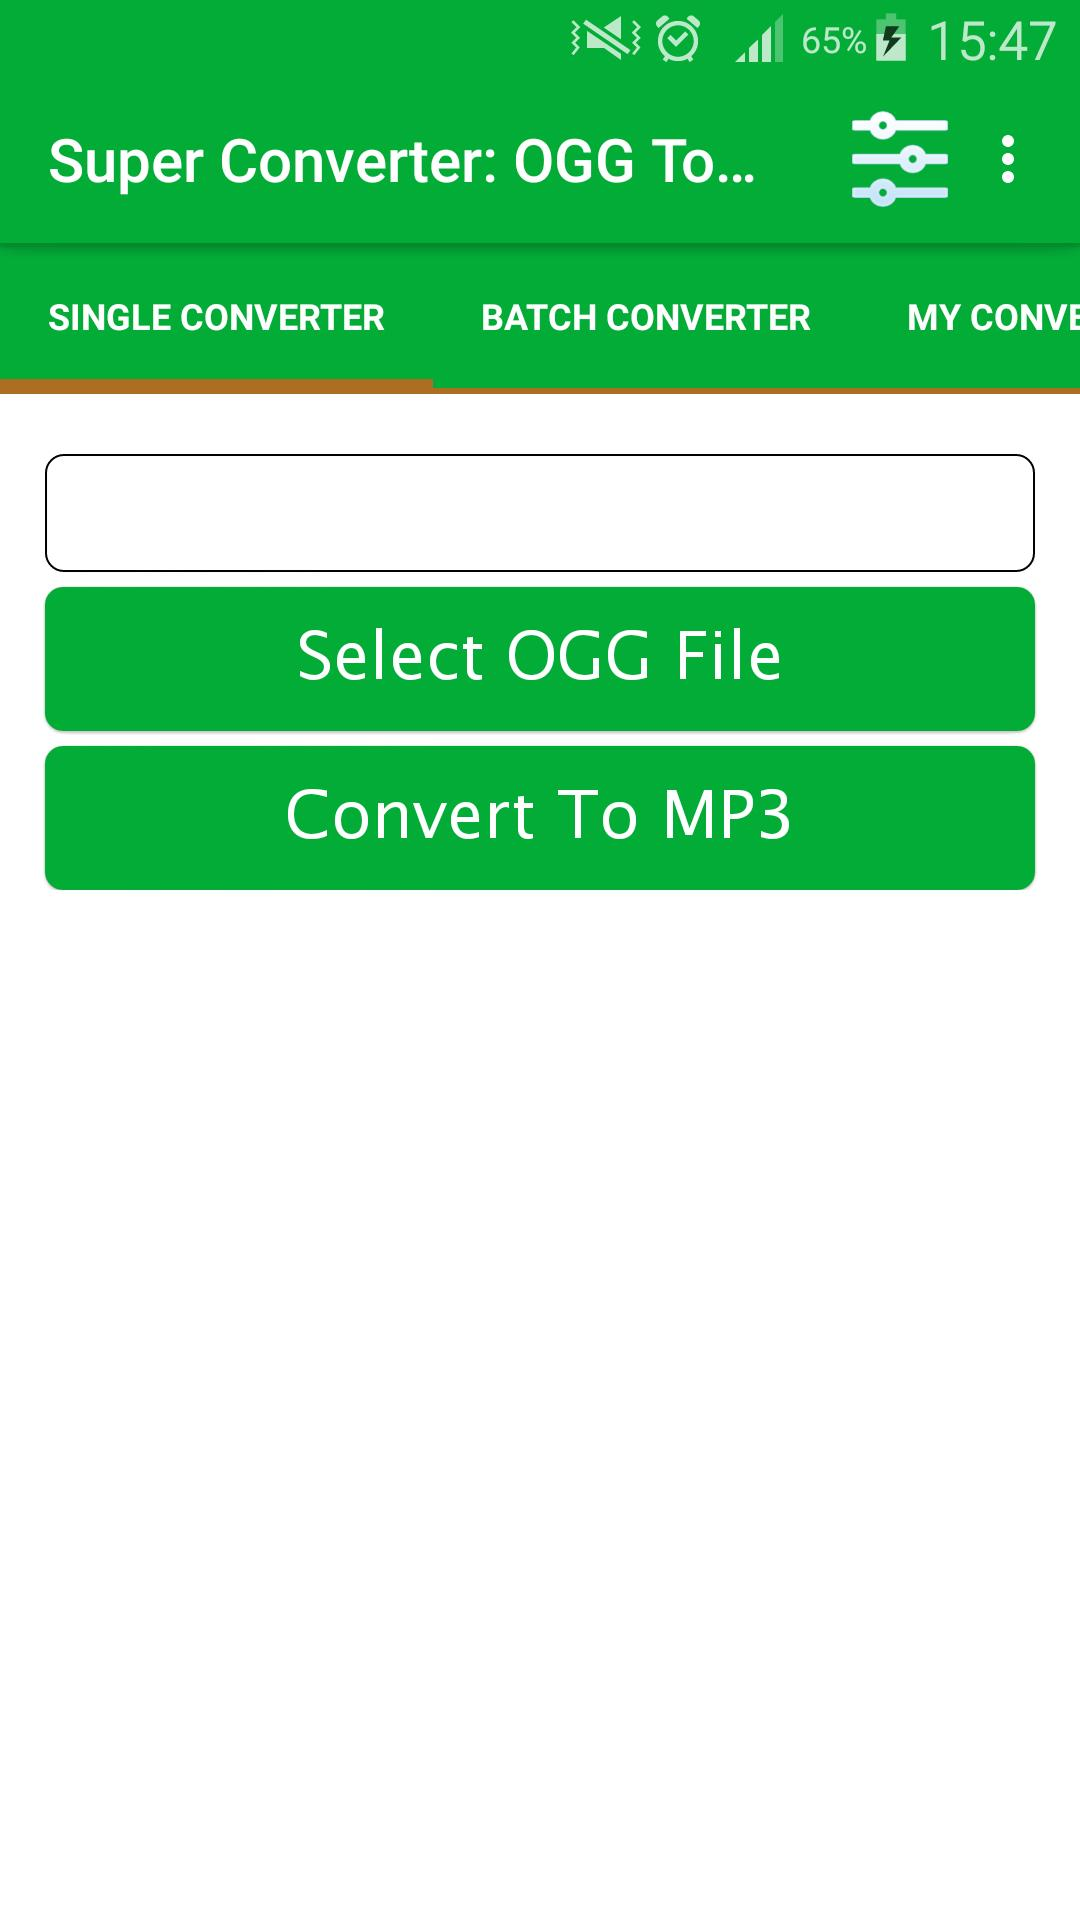 Super Converter : OGG To MP3 for Android - APK Download